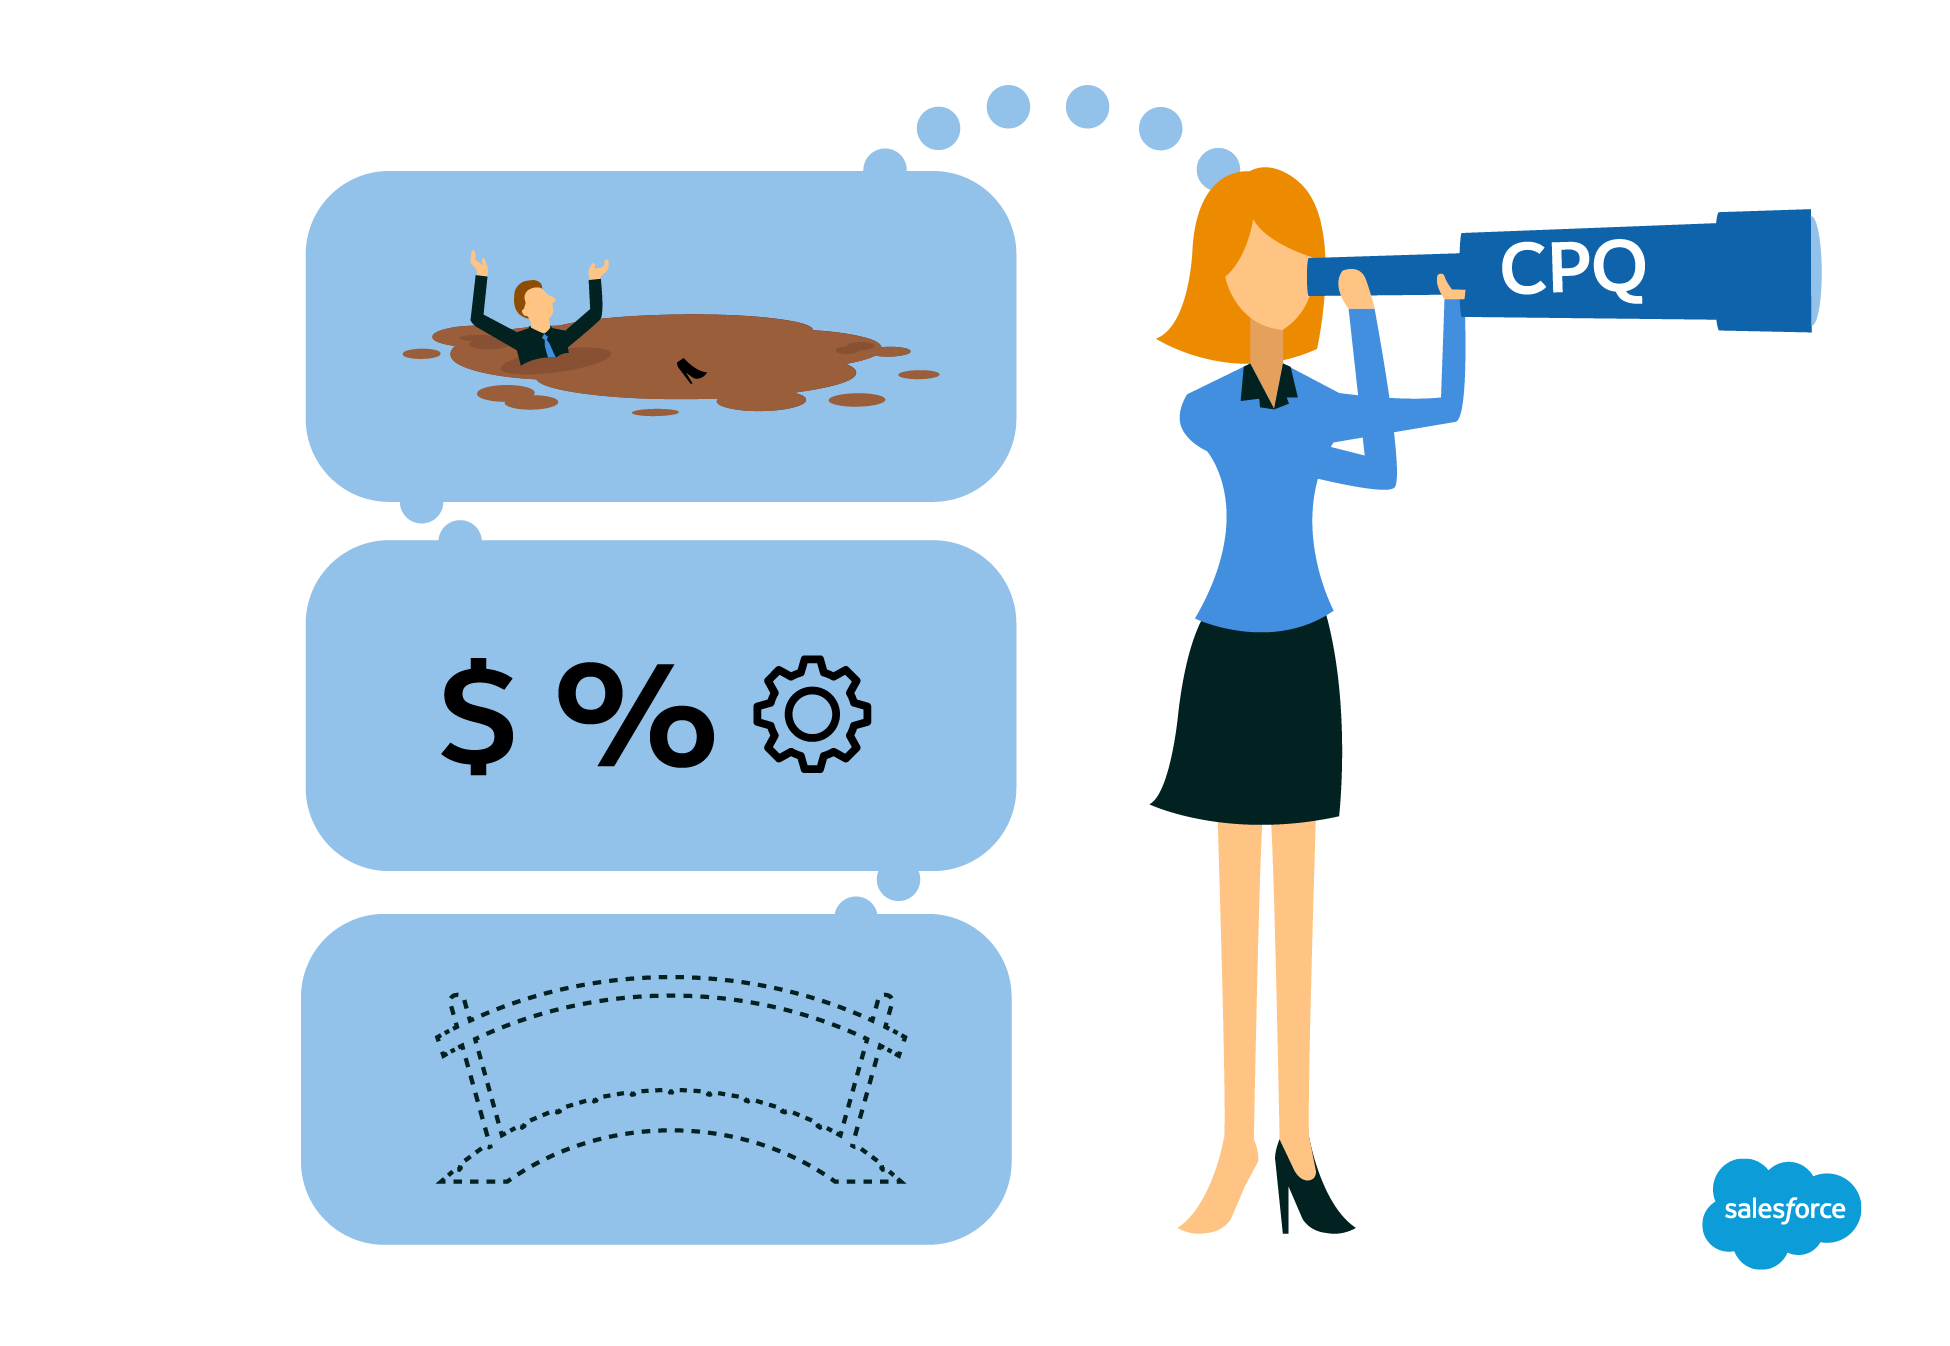 cpq helps refine the sales process